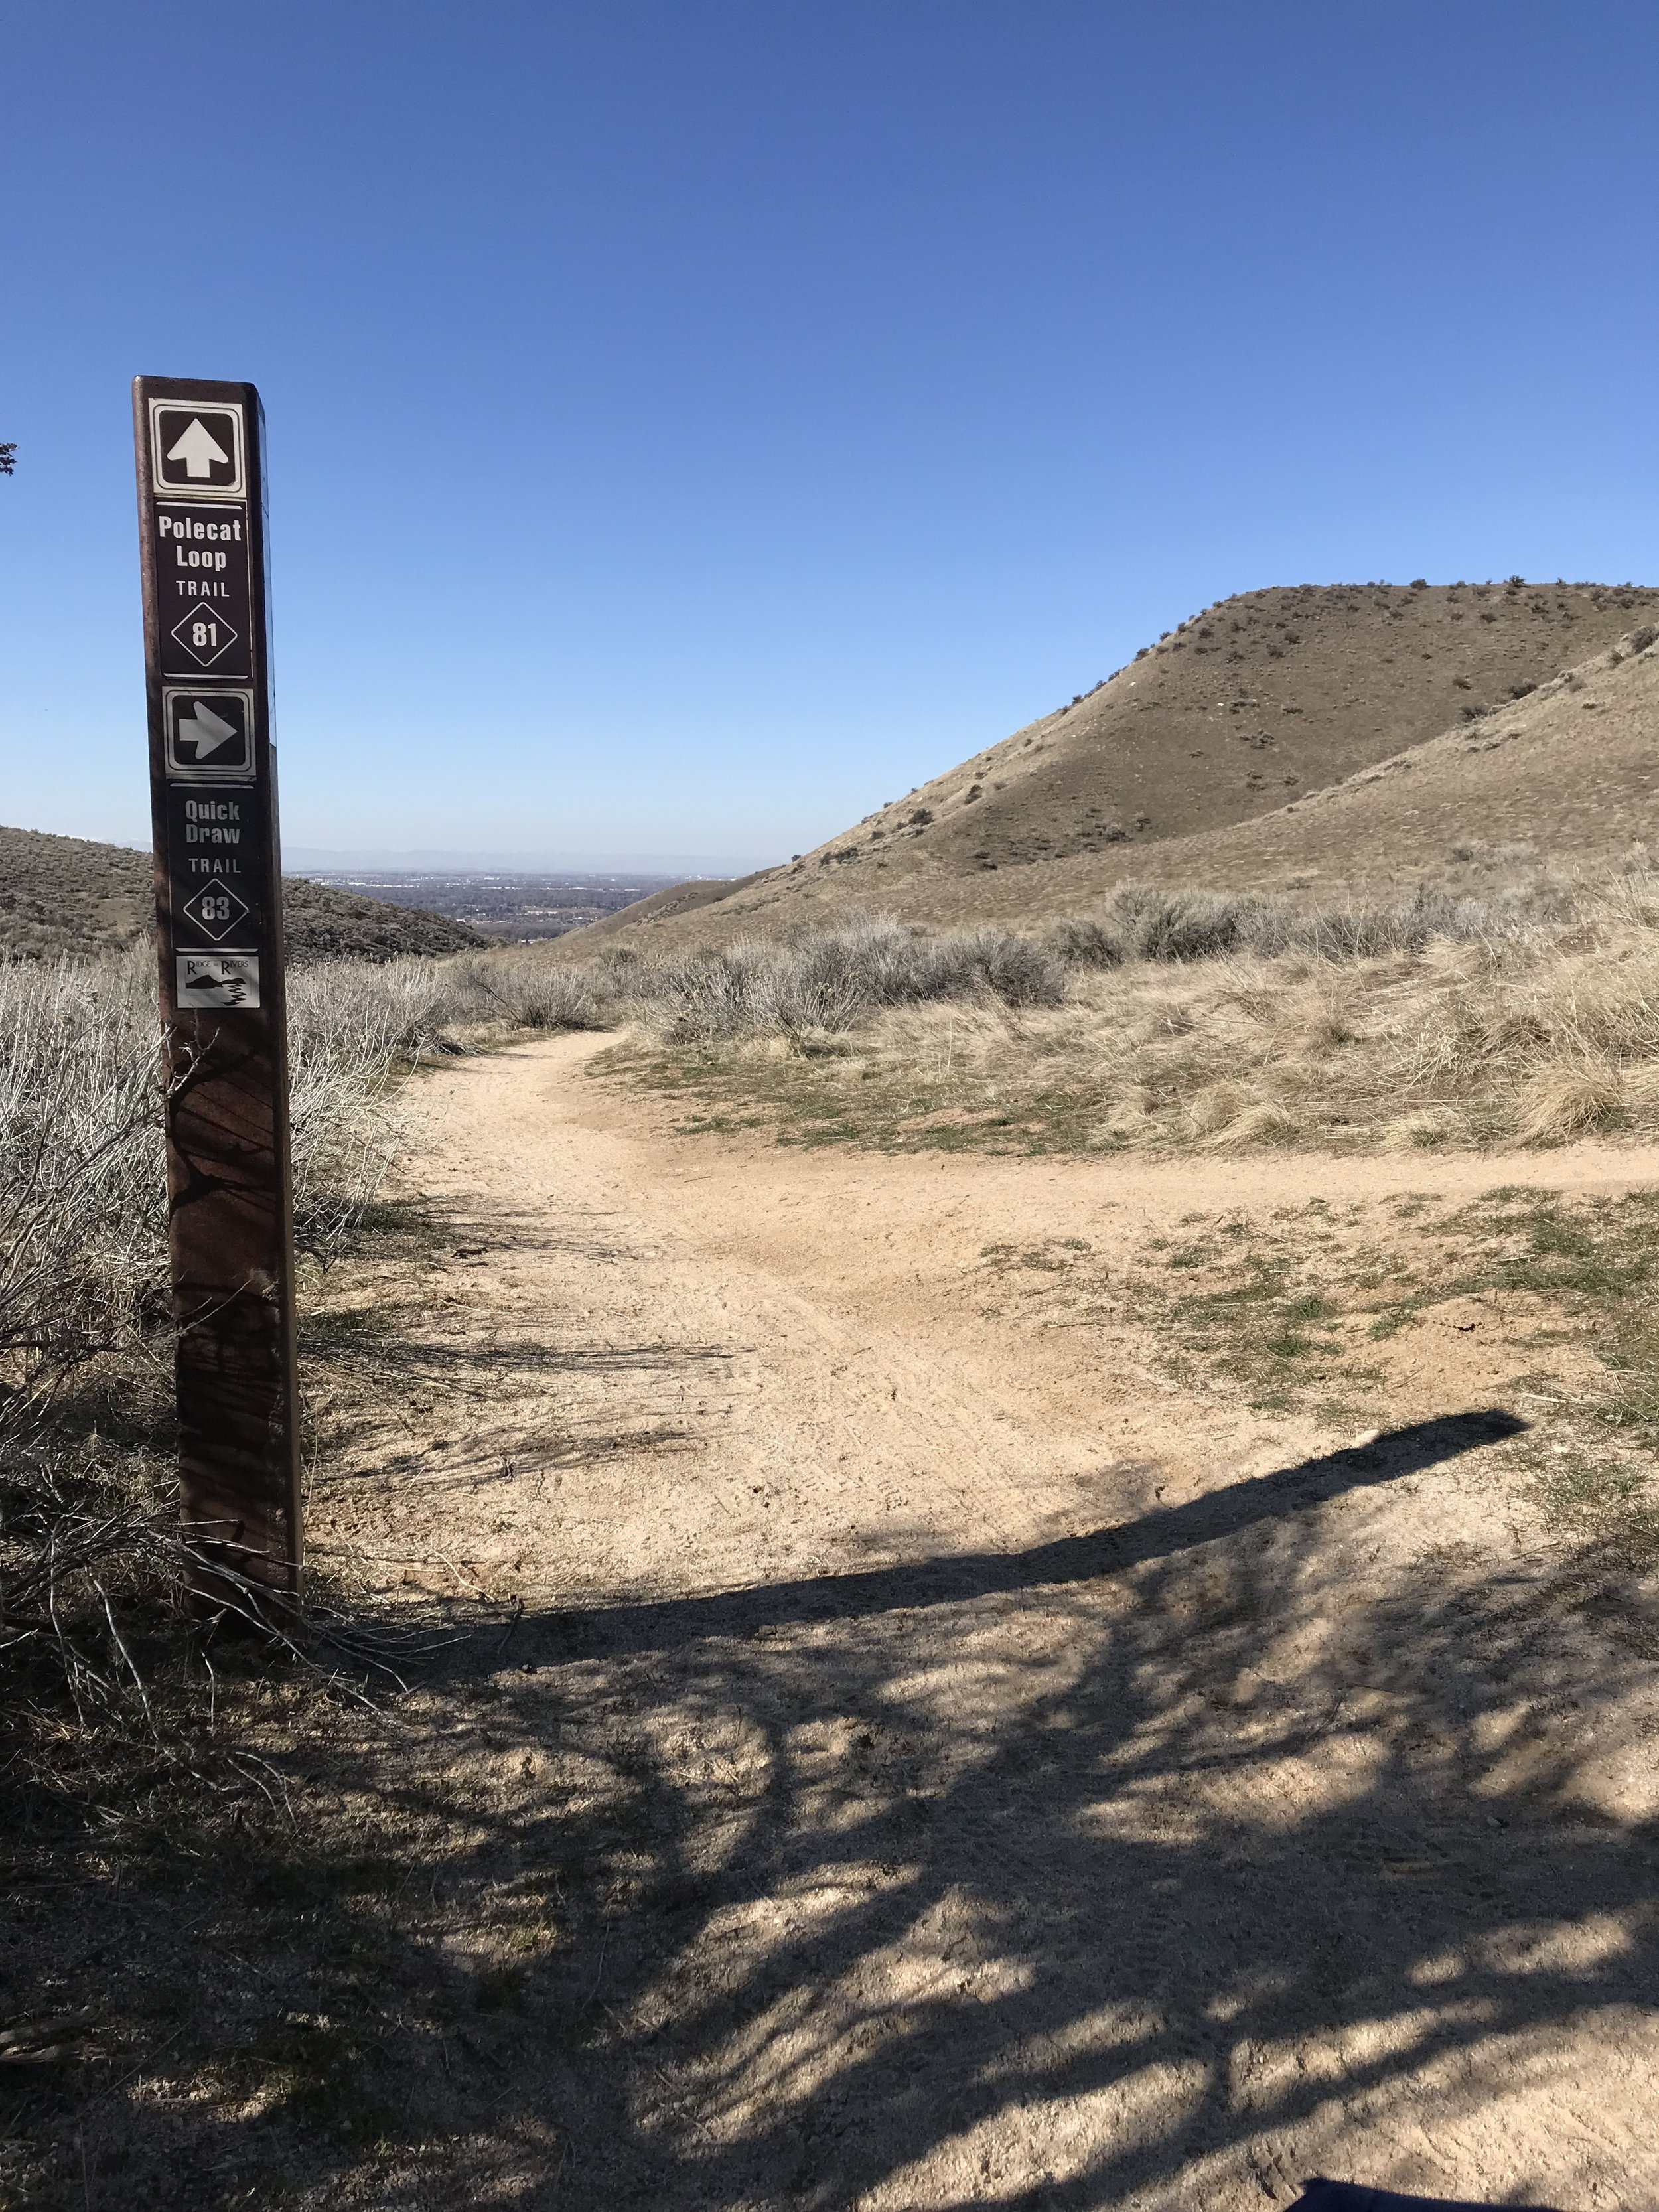 Picture of polecats trail post sign and hills overlooking Boise City